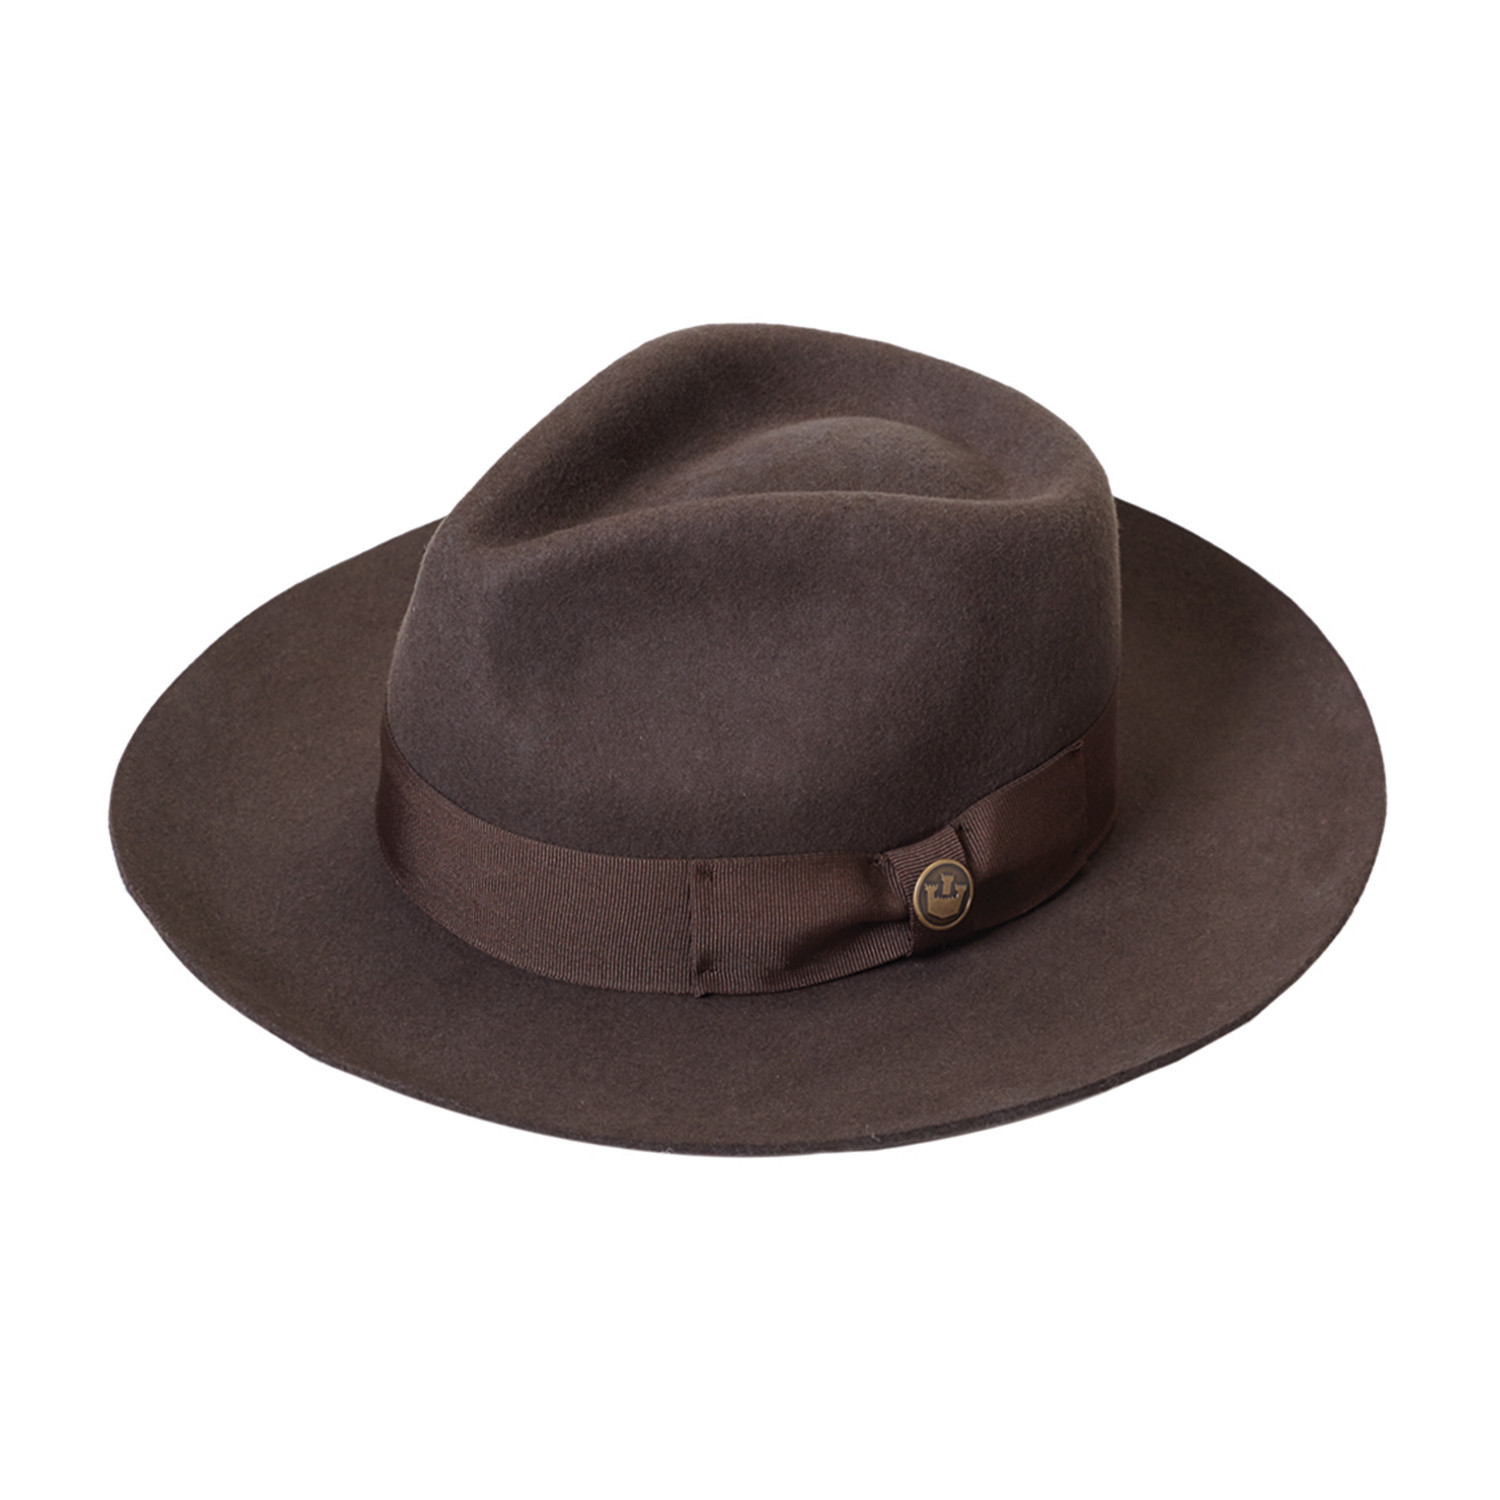 5eb0065860e49 The Bookie Fedora    Brown (S) - Goorin Bros - Touch of Modern